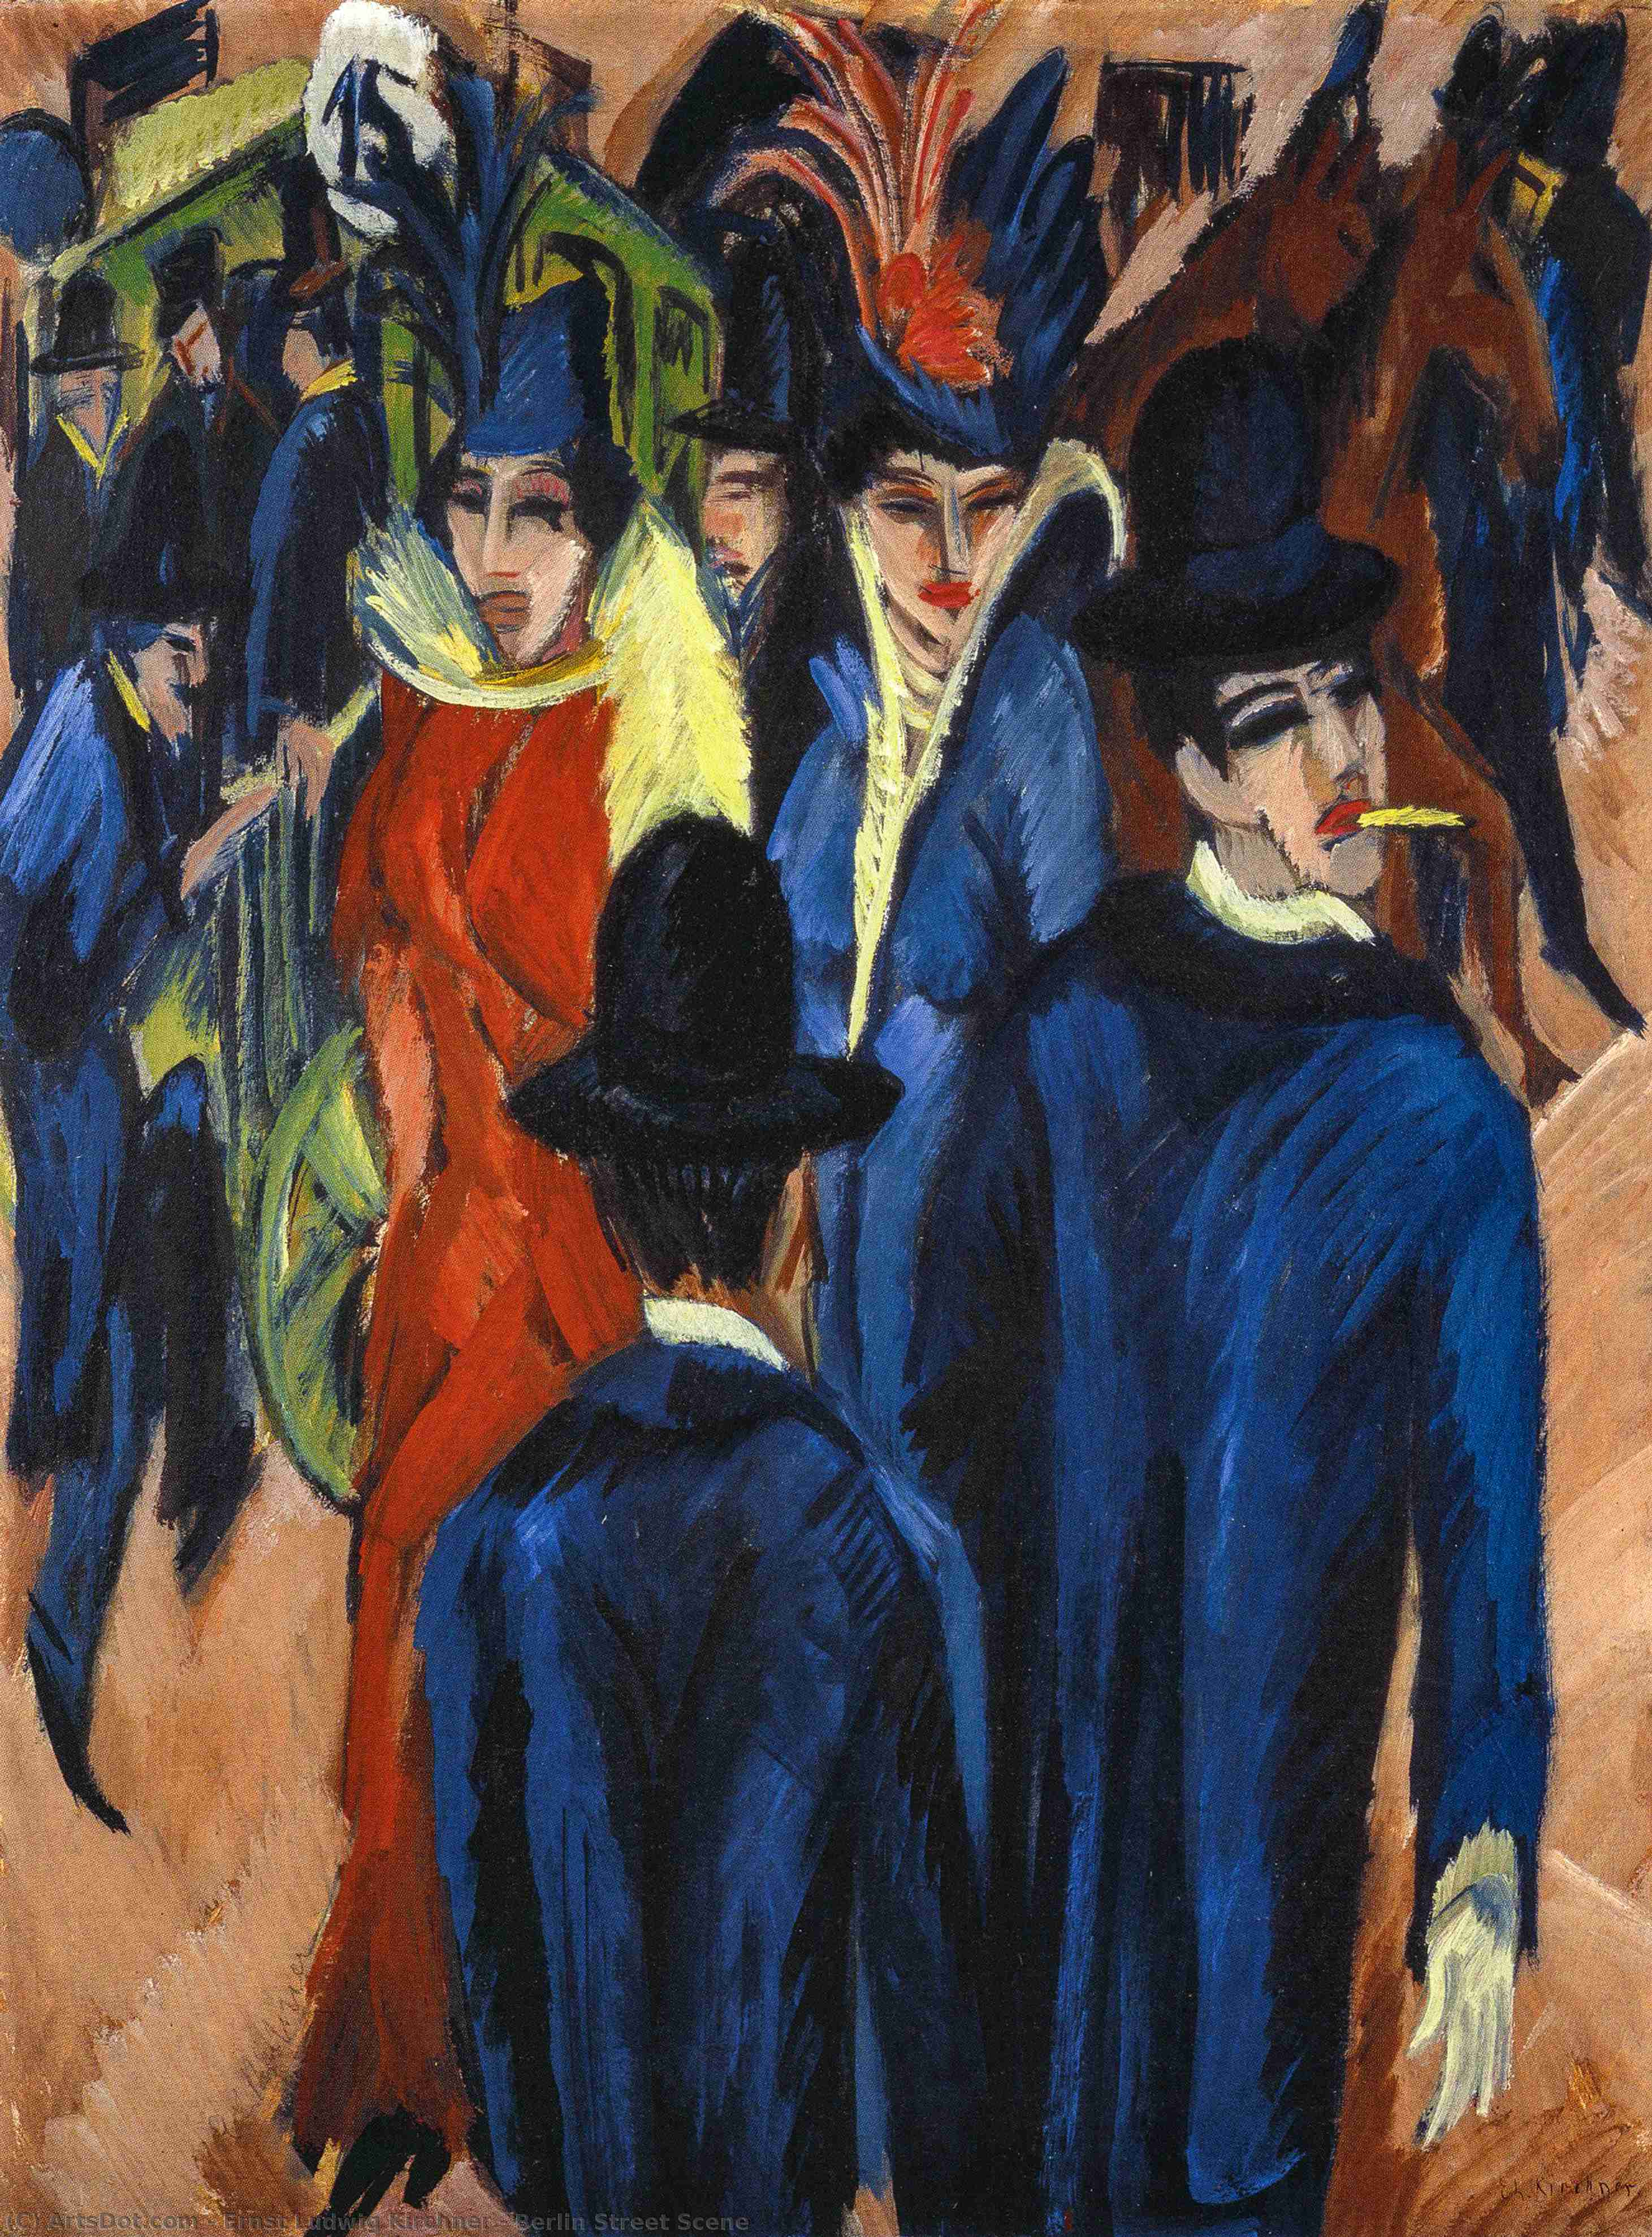 Wikioo.org - The Encyclopedia of Fine Arts - Painting, Artwork by Ernst Ludwig Kirchner - Berlin Street Scene